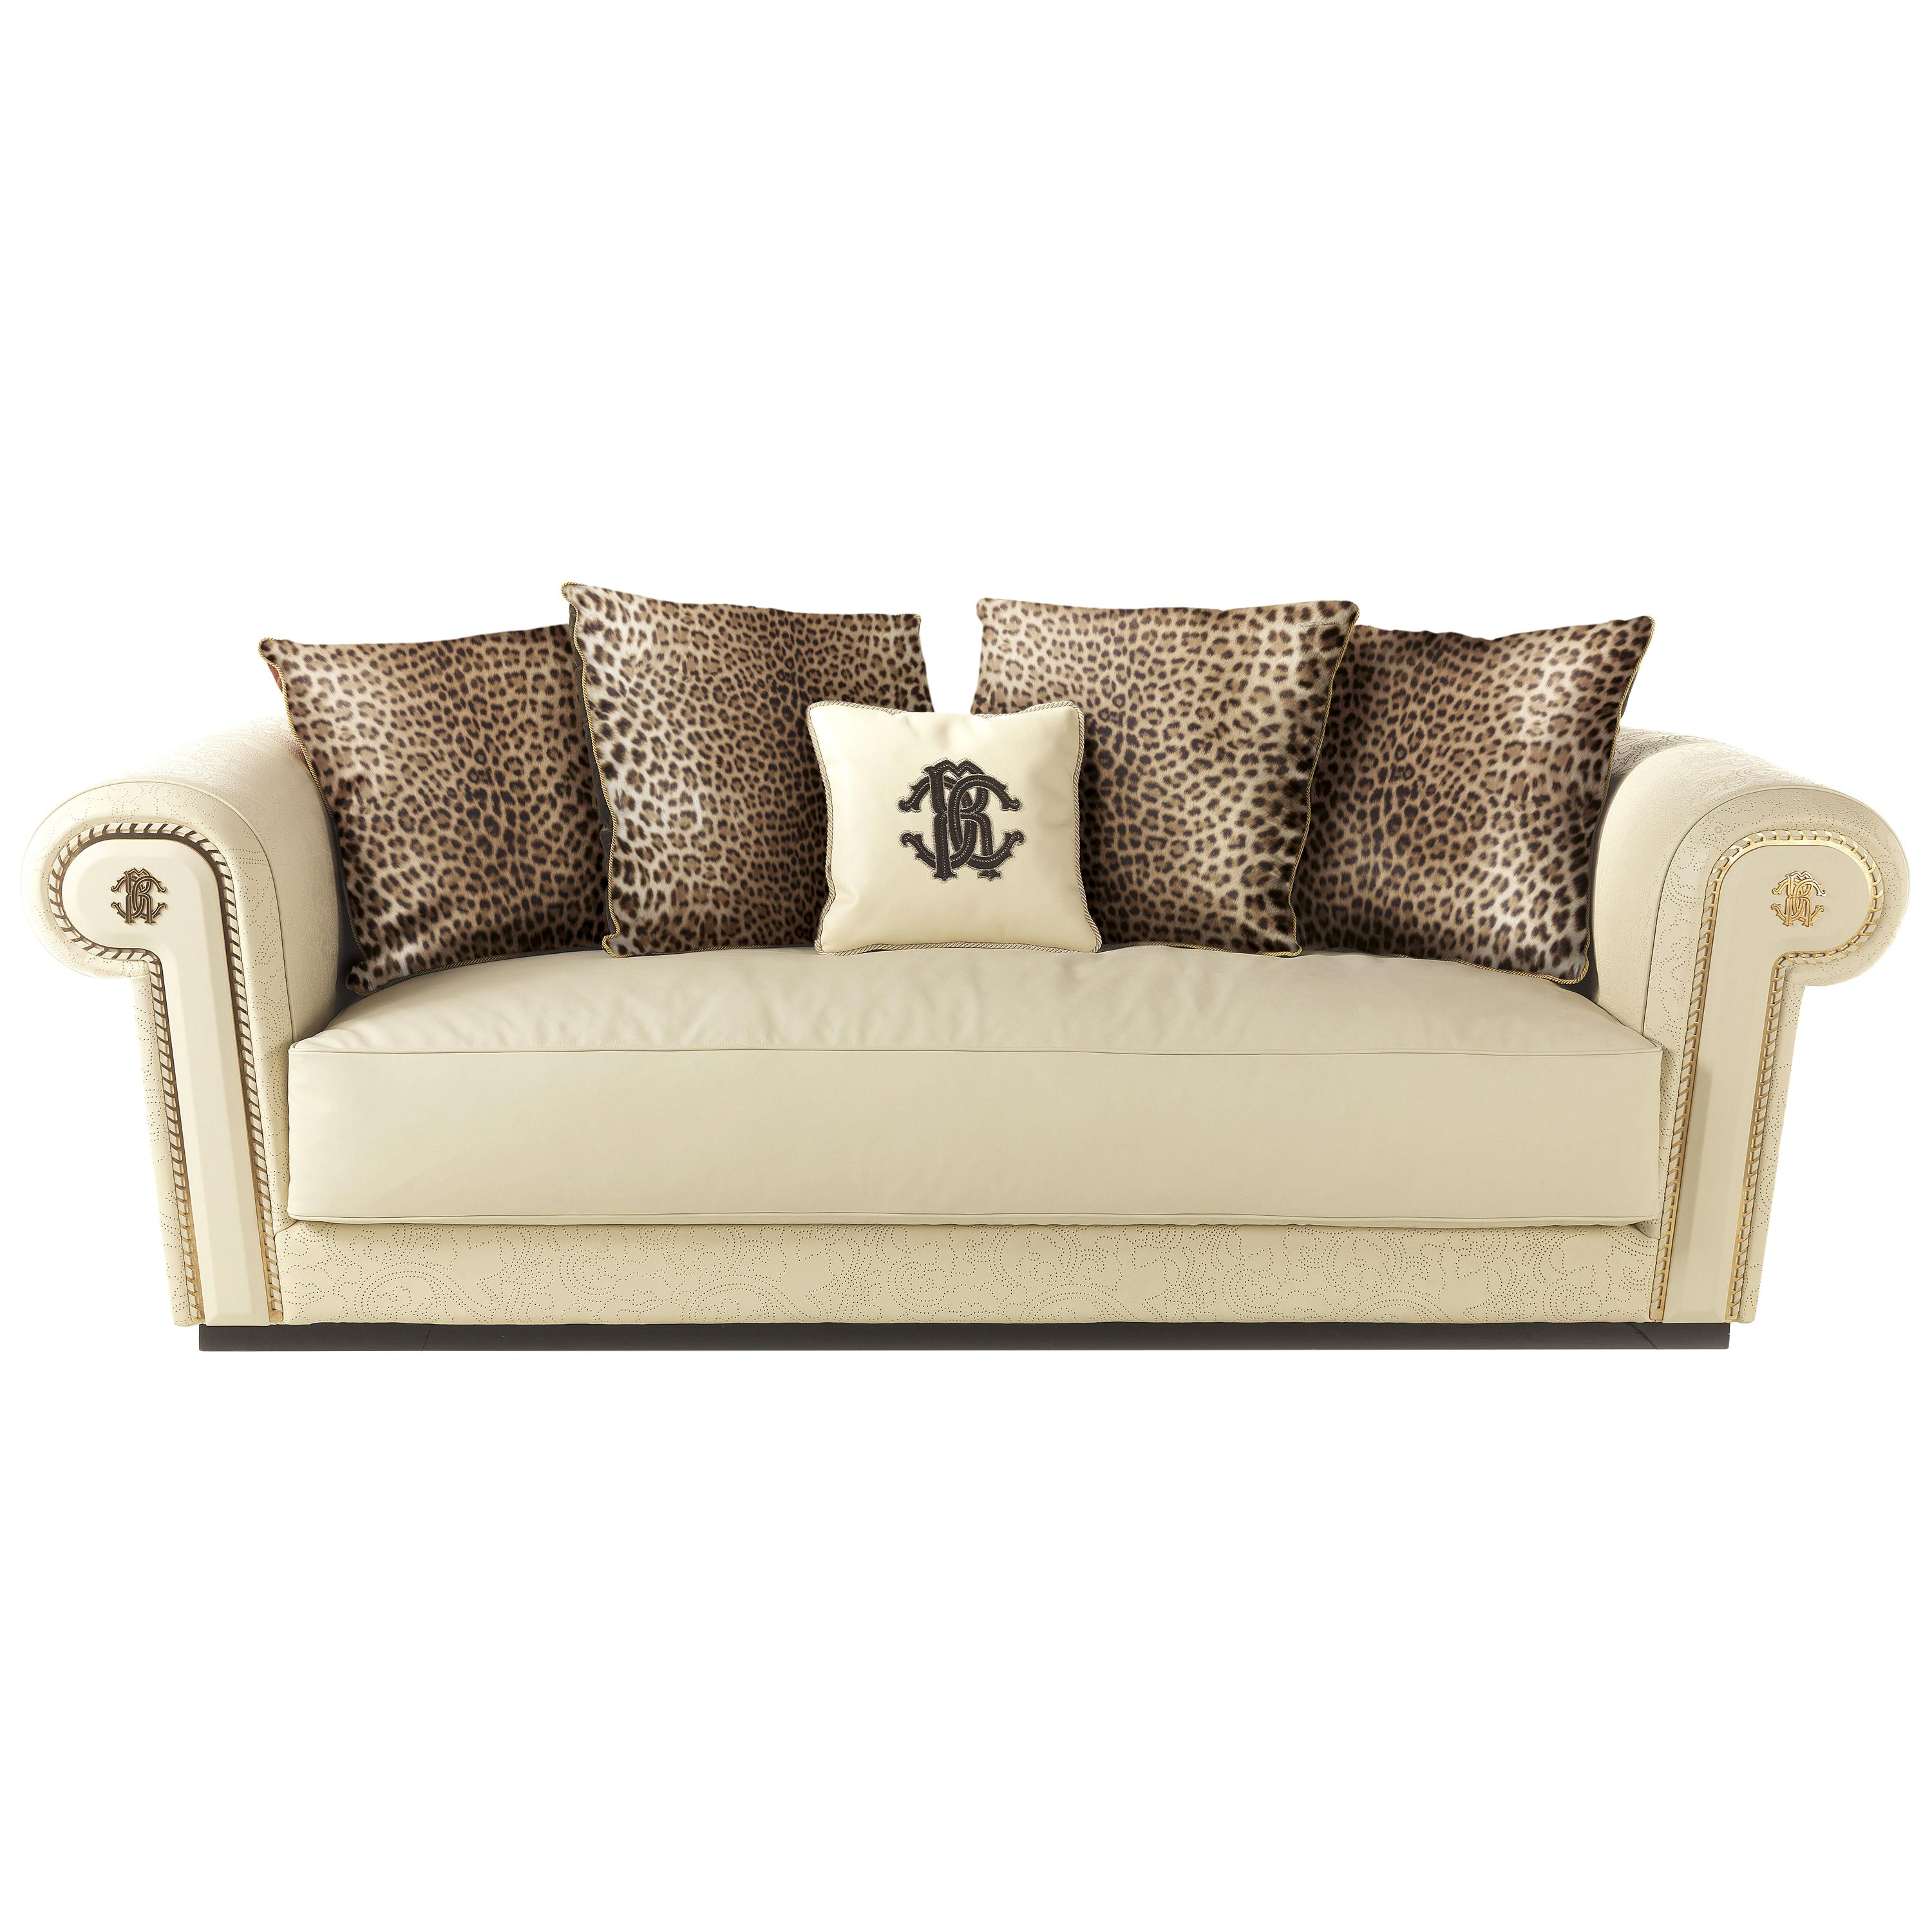 Diva 3-Seater Sofa in Leather by Roberto Cavalli Home Interiors